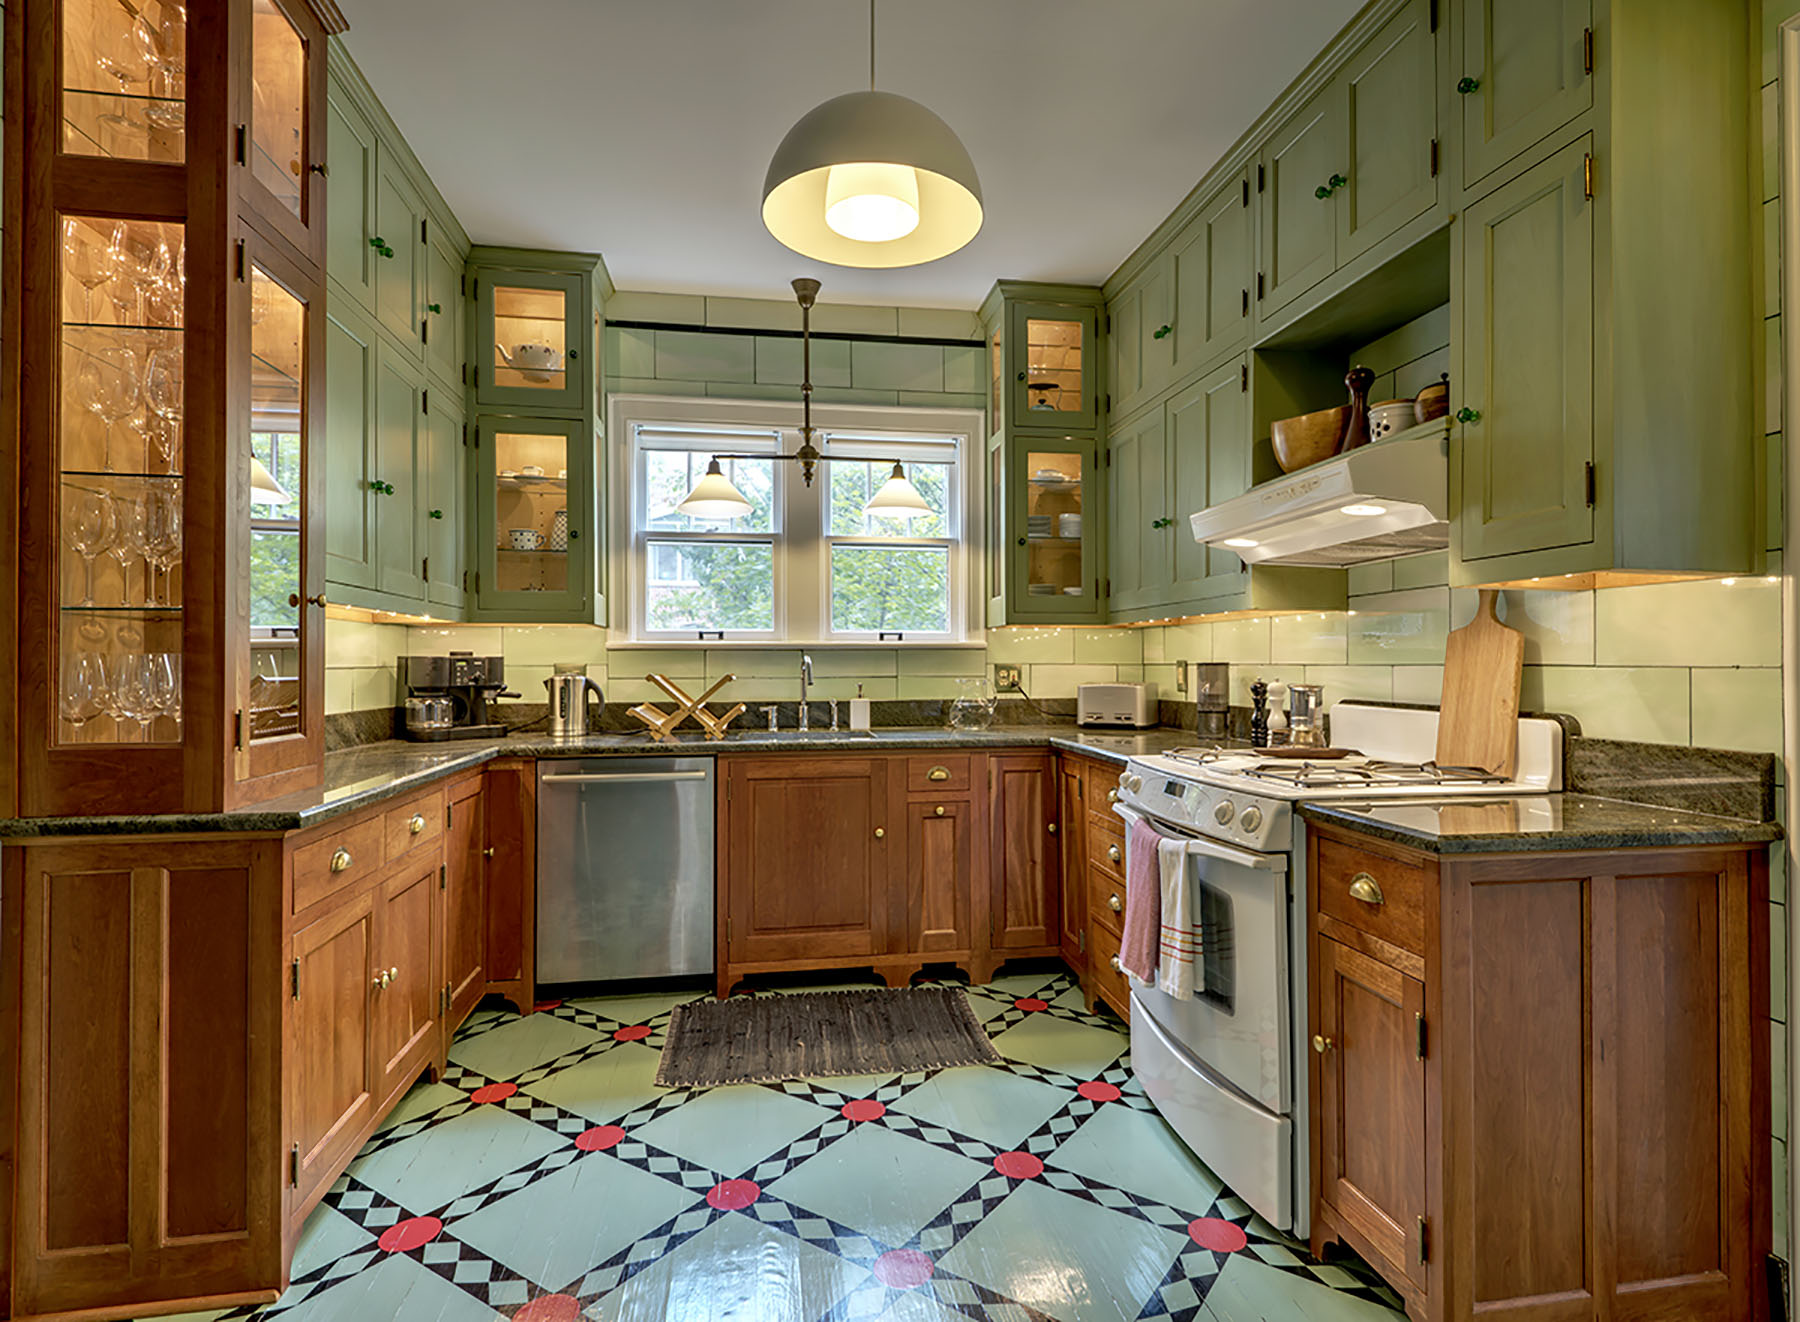 Refinishing Kitchen Cabinets With Milk Paint Pros And Cons Popular Woodworking Magazine